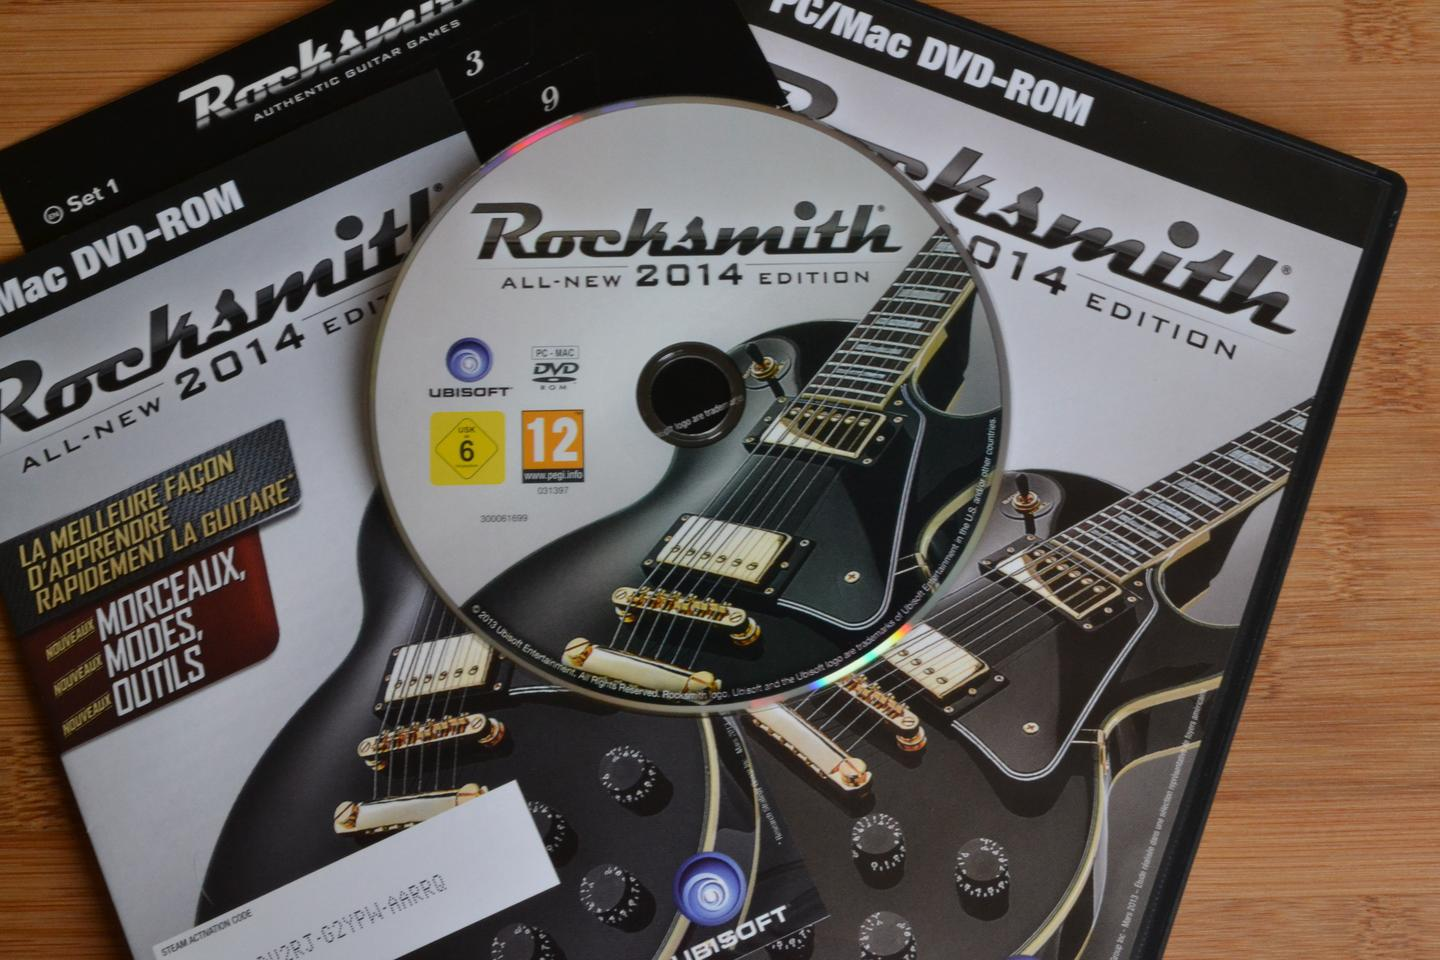 Gizmag reviews Rocksmtih 2014 from Ubisoft